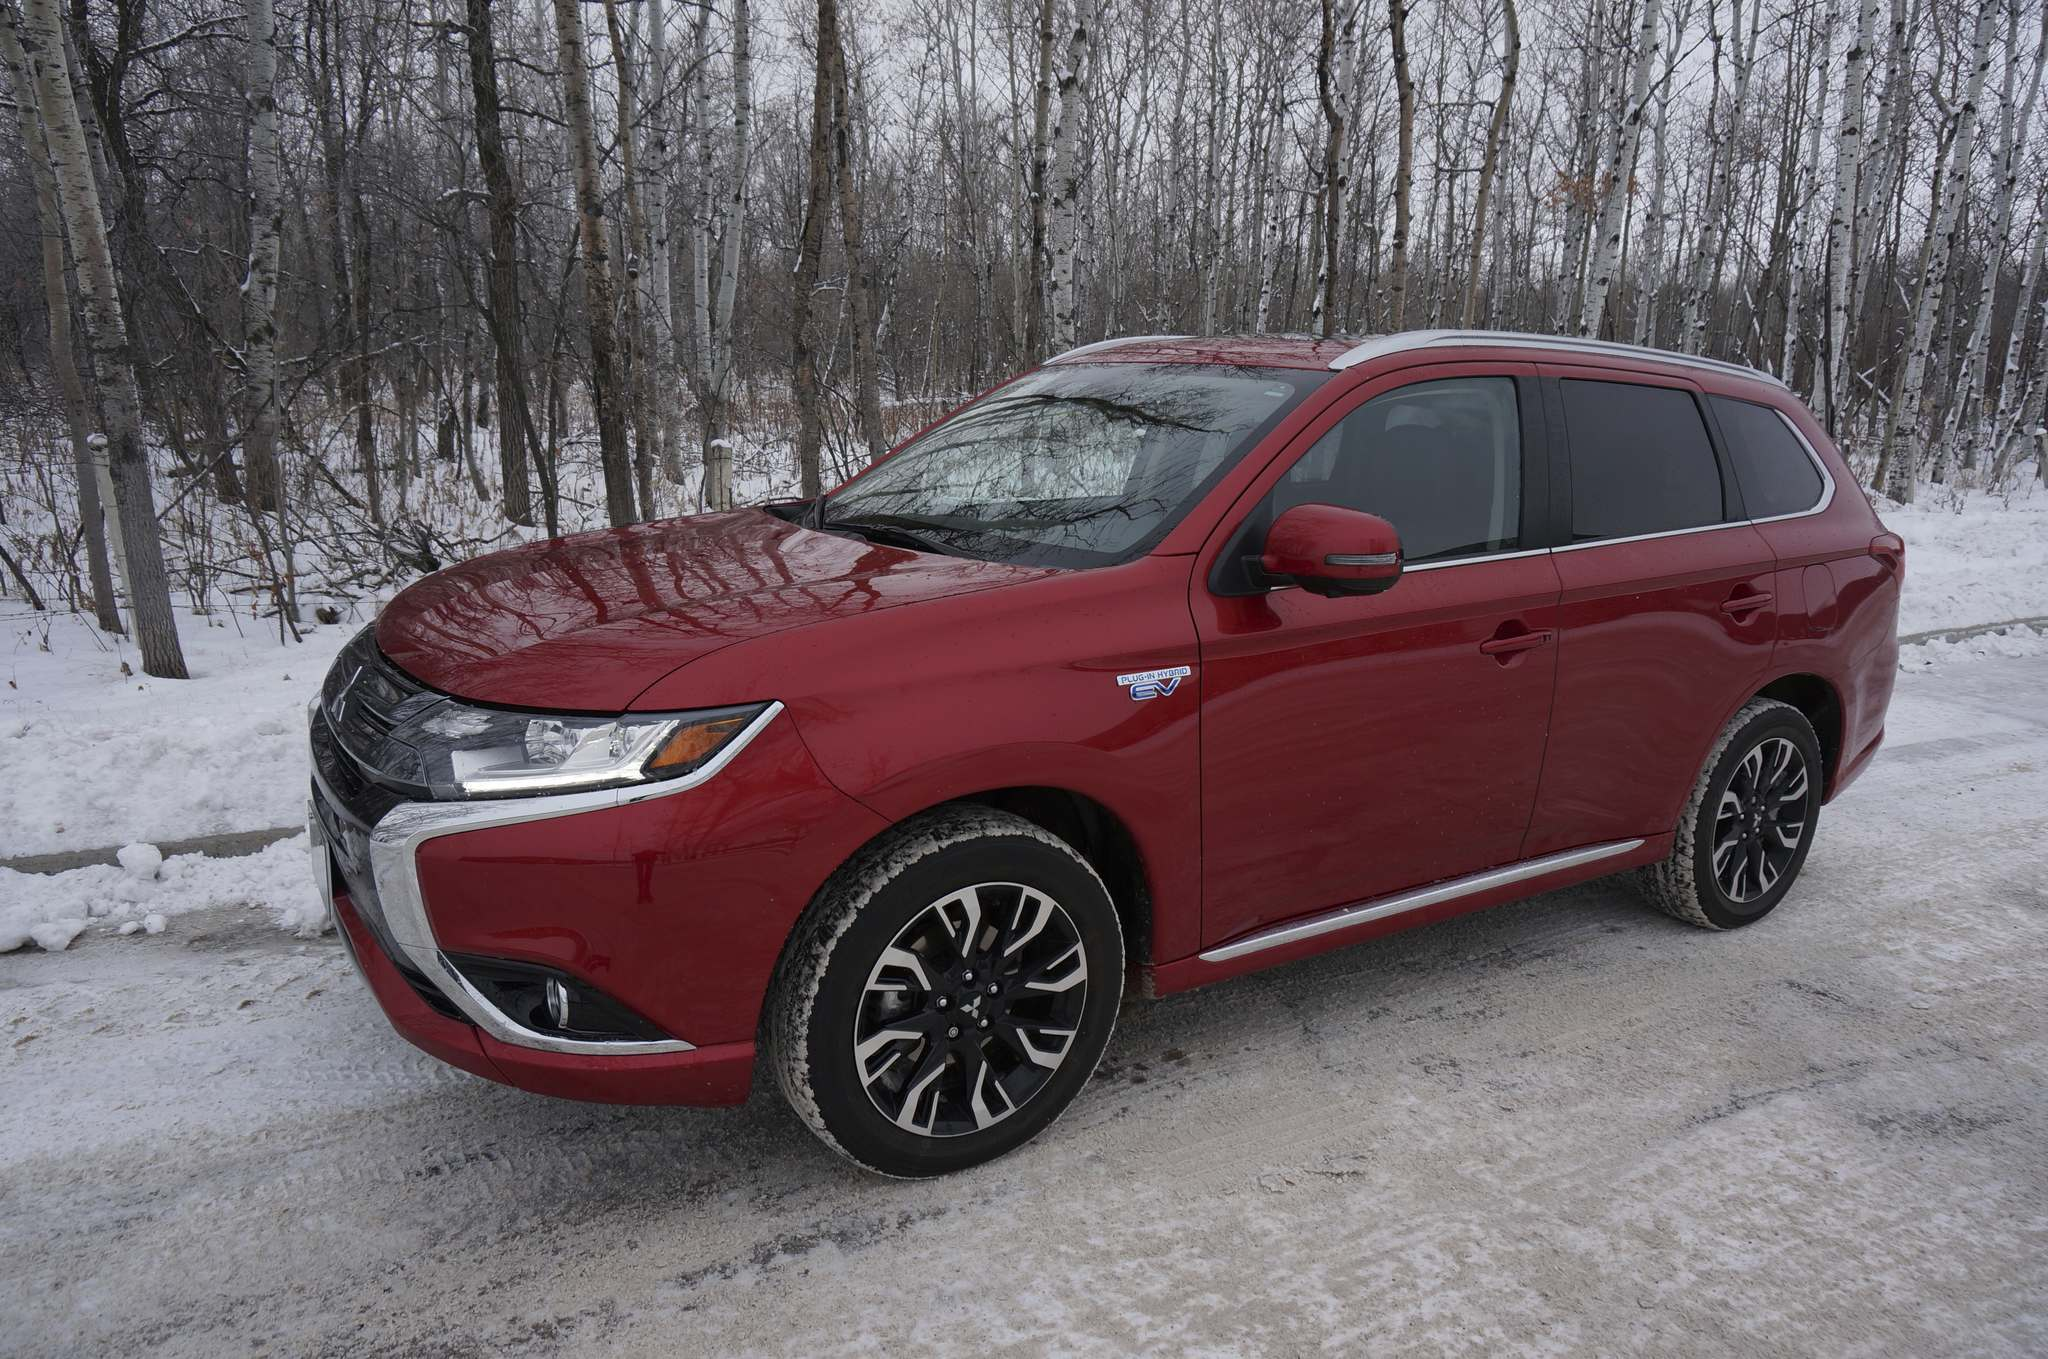 Haney Louka / Winnipeg Free PressThe Mitsubishi Outlander PHEV is the first plug-in hybrid vehicle to reach sales of 5,000 in Canada in a single calendar year.